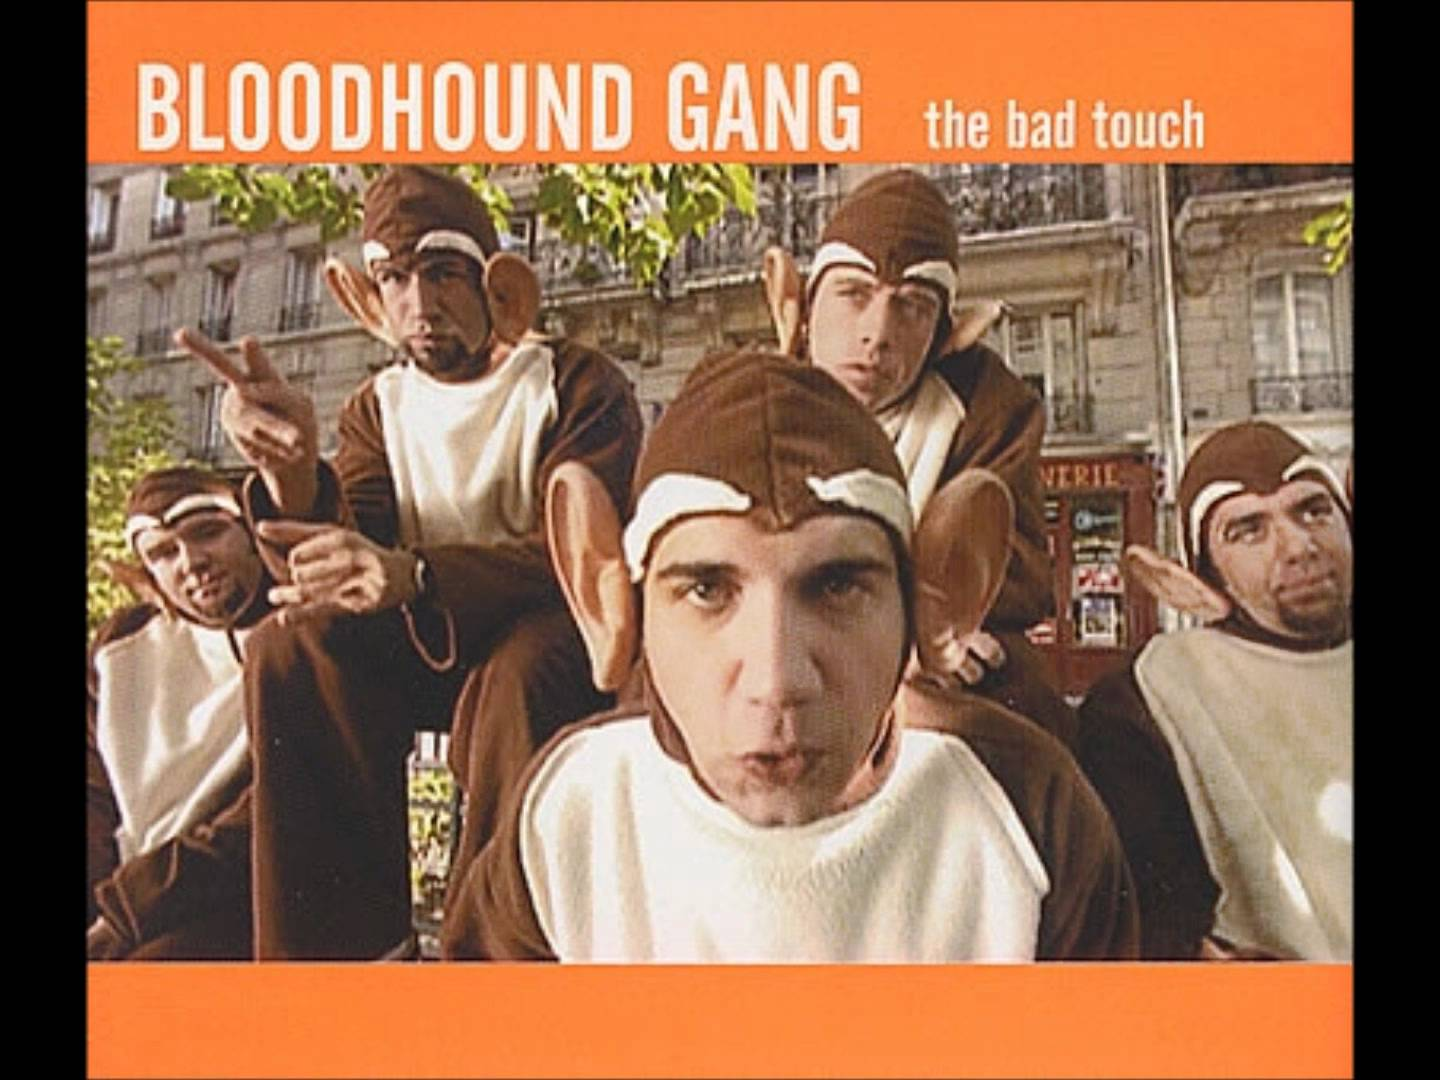 The Bloodhound Gang –